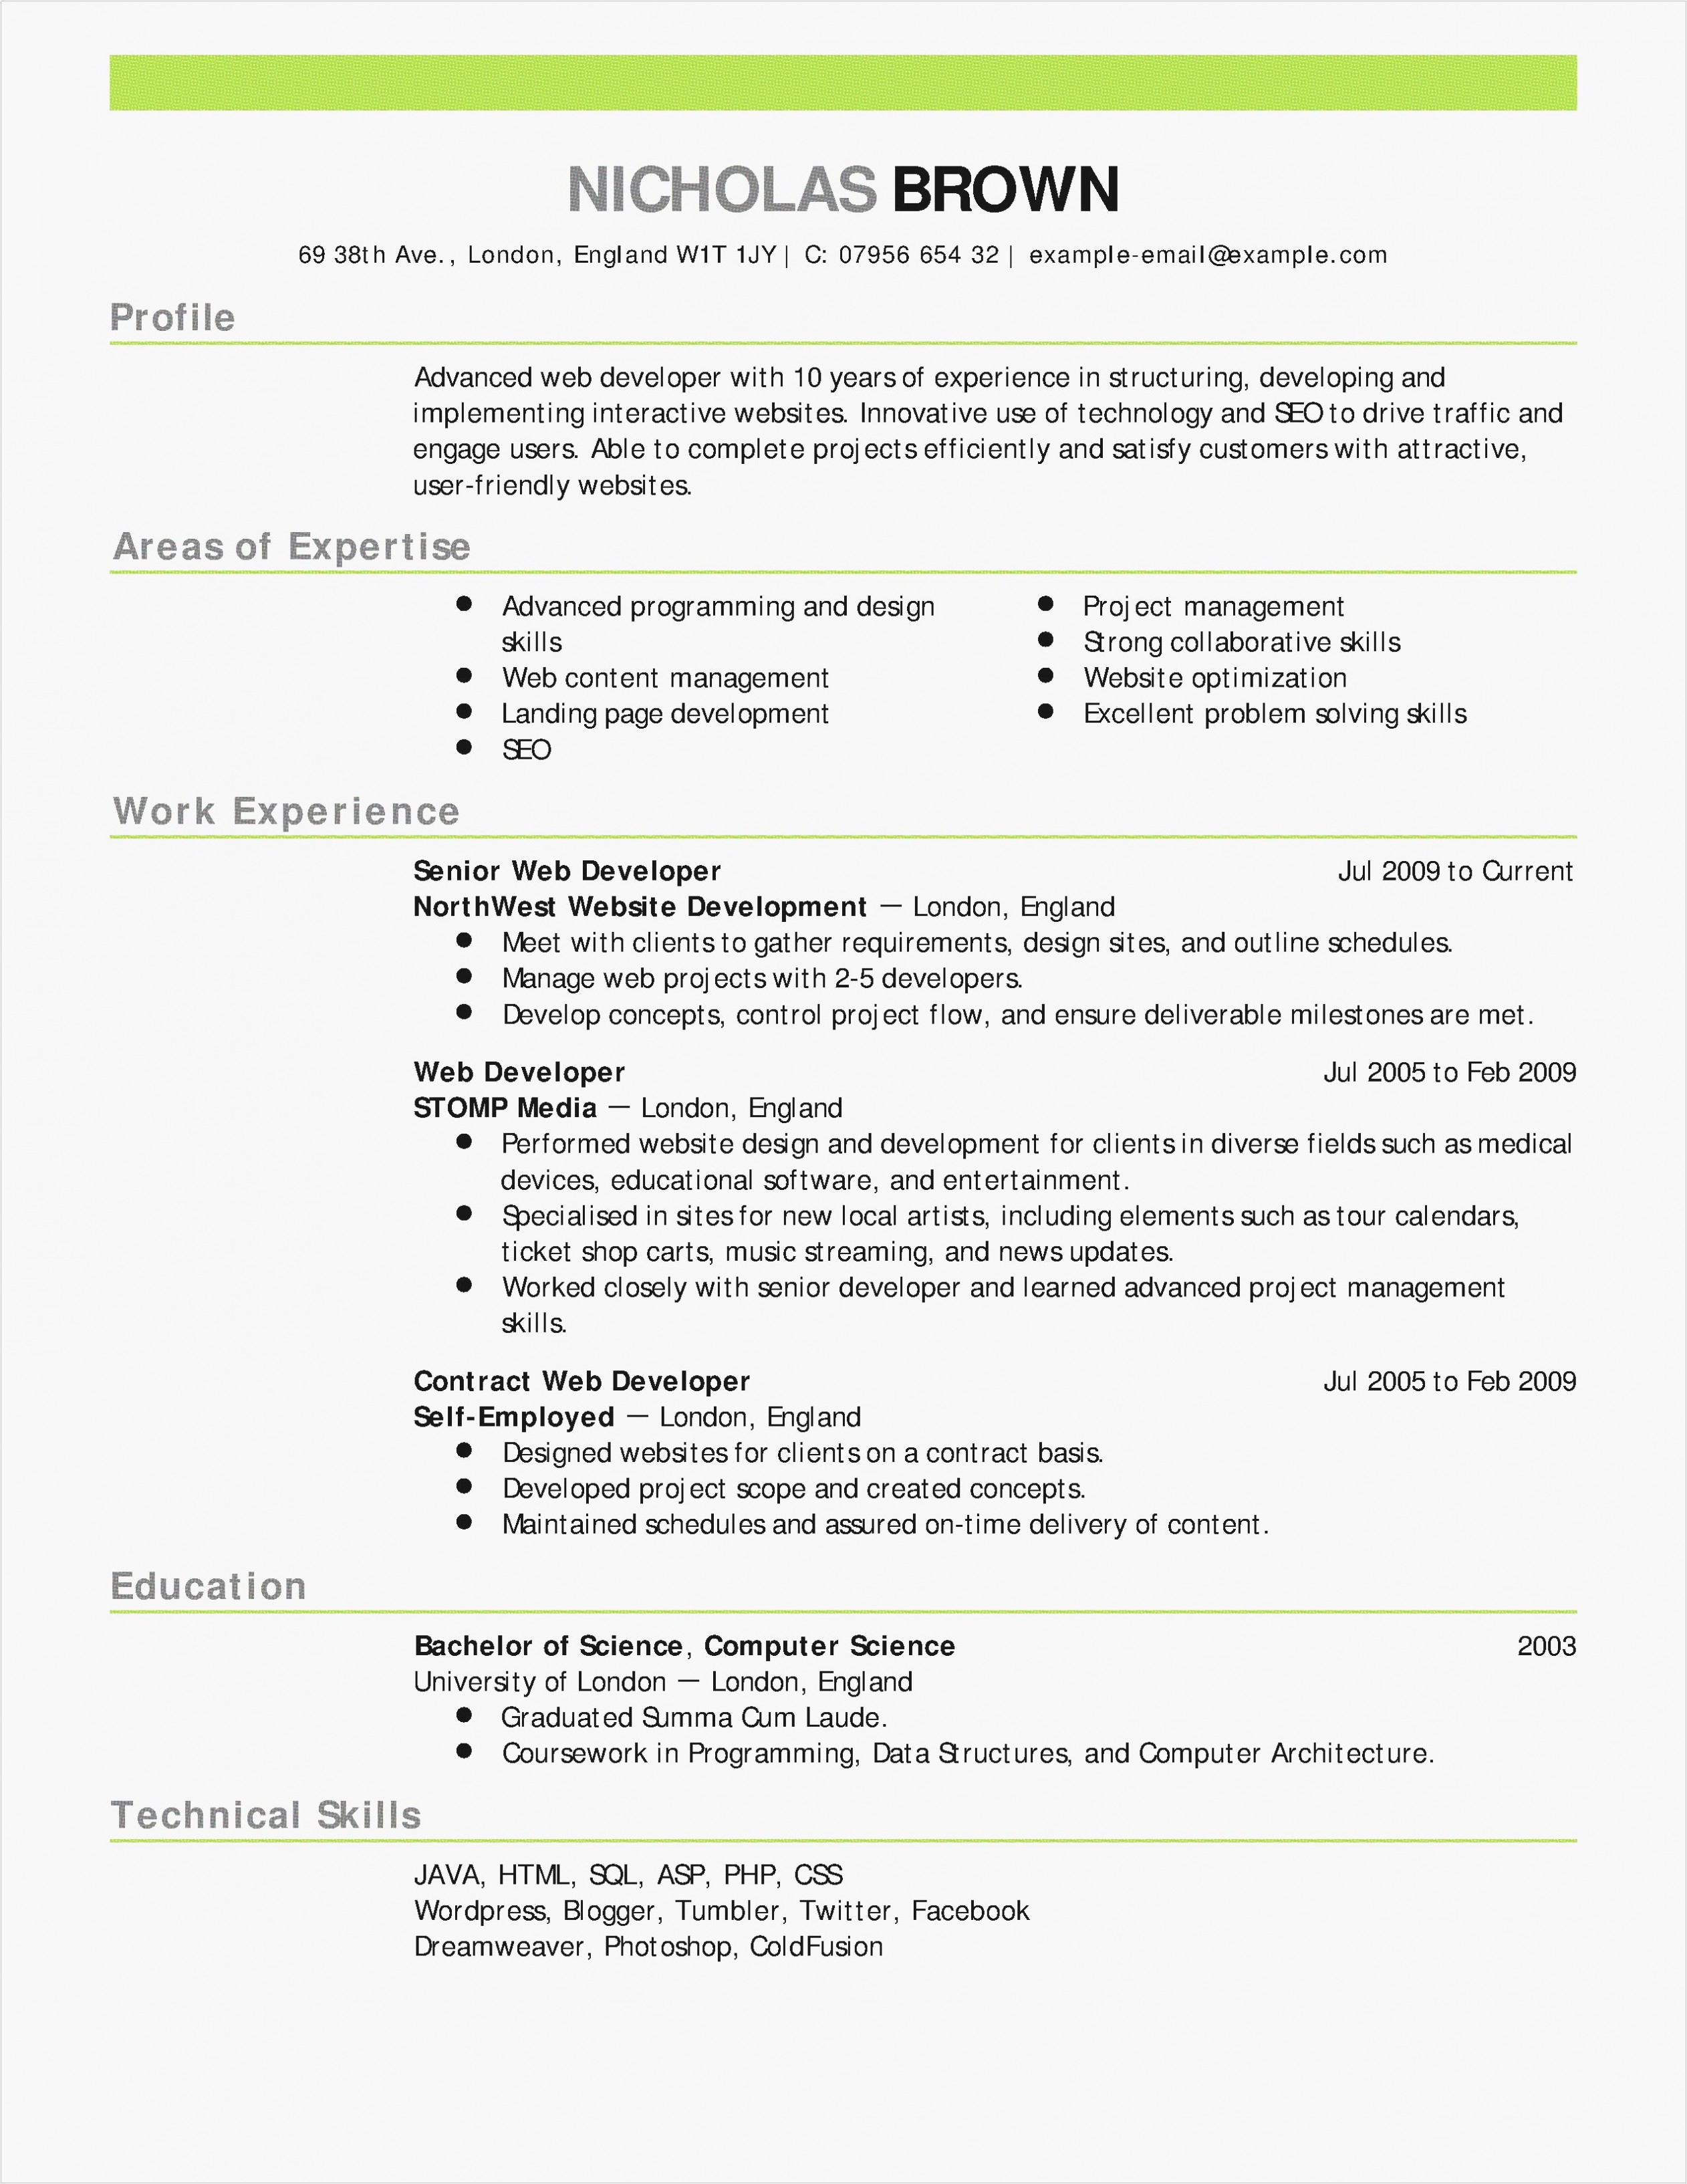 Free Template for Resume - Letter Agreement Template Free Collection